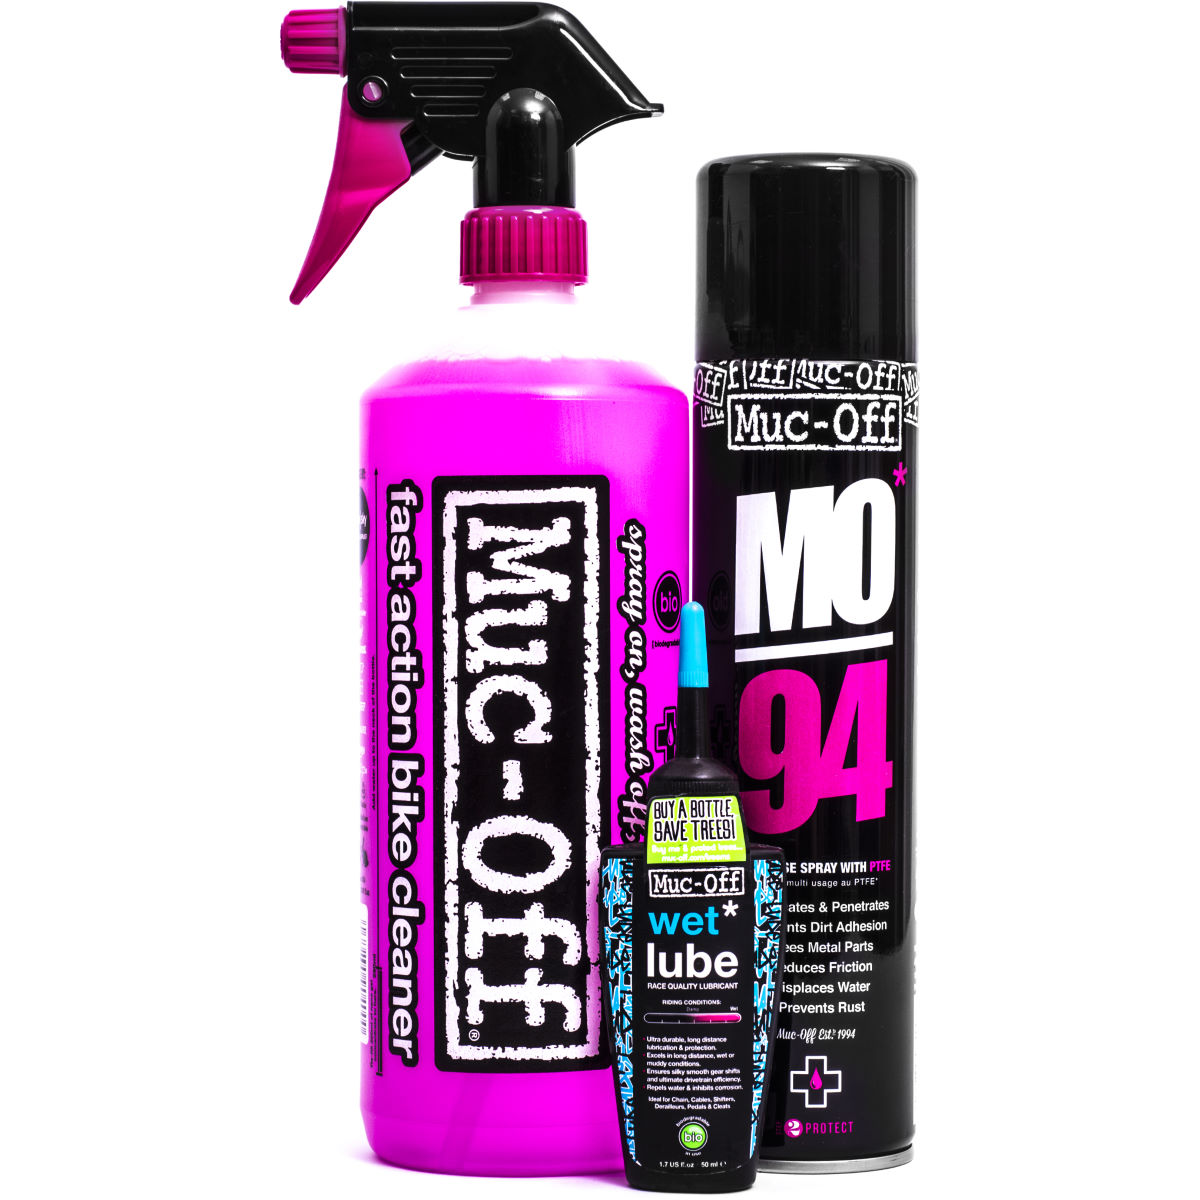 Muc-Off Wash, Protect and Lube Kit   Cleaning Products